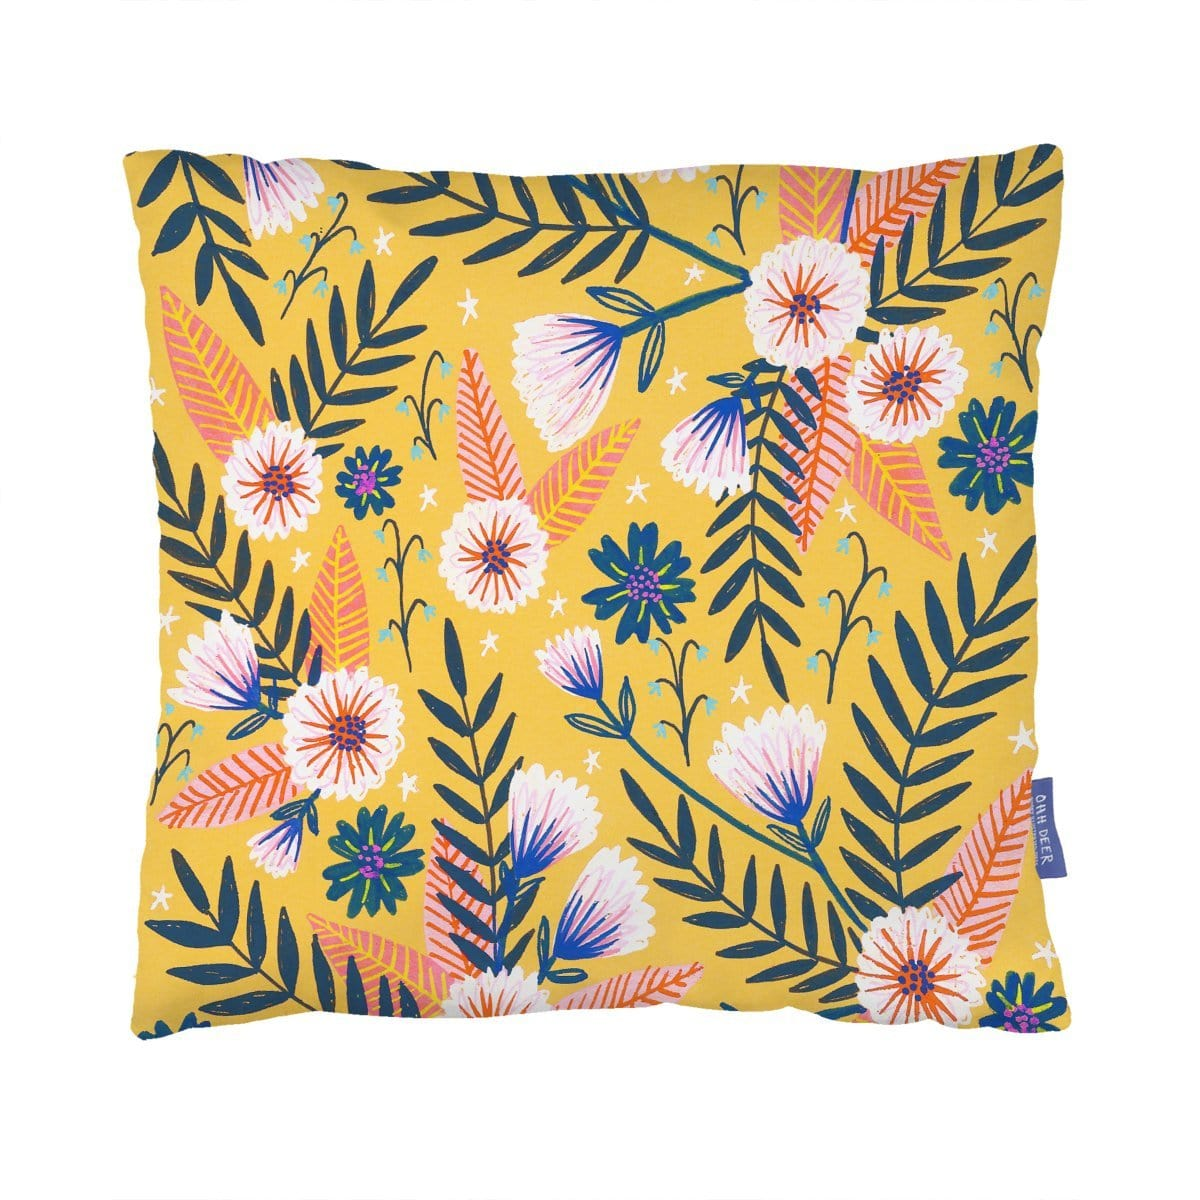 Summertime Garden Cushion